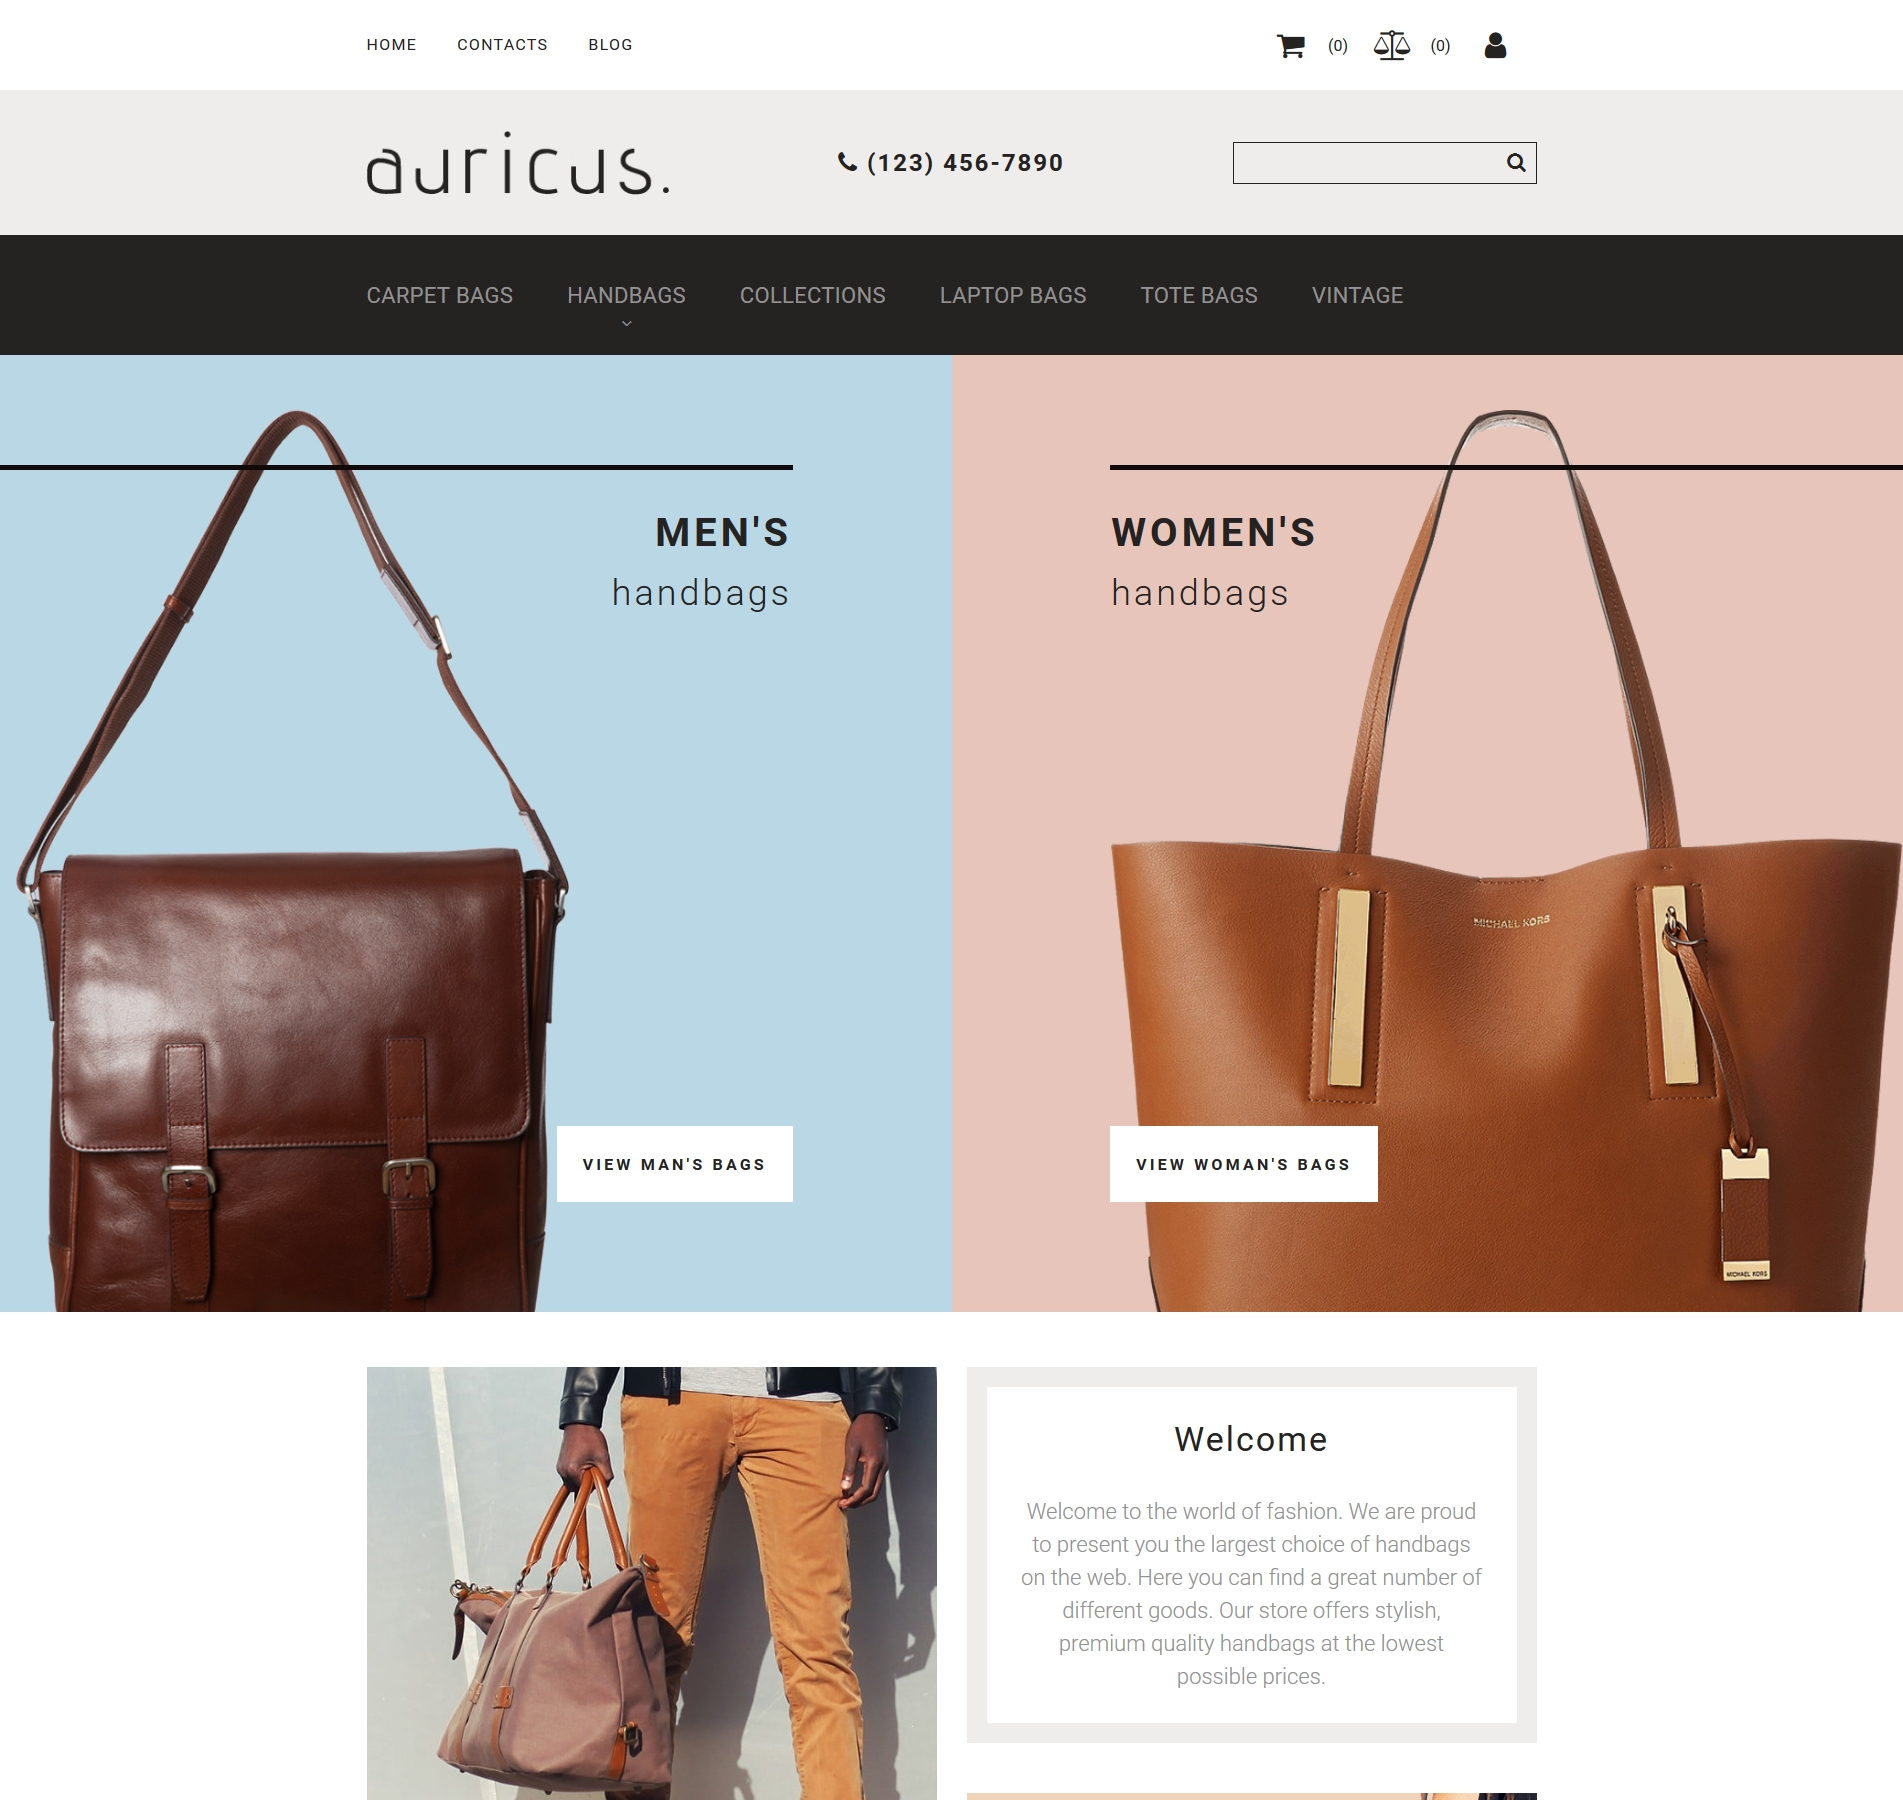 Website Design Template 74182 - outfit